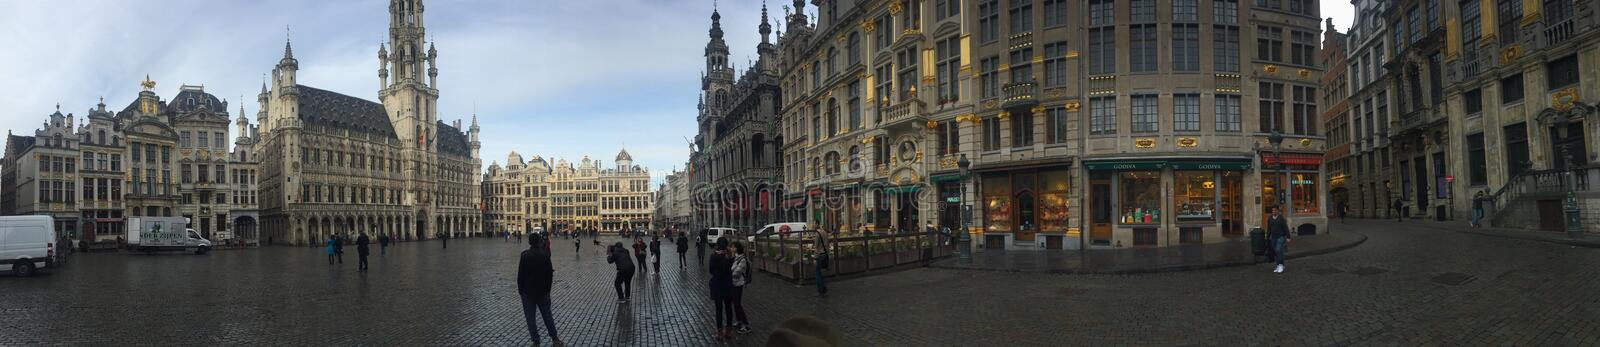 Grand Place Brusseles stock images